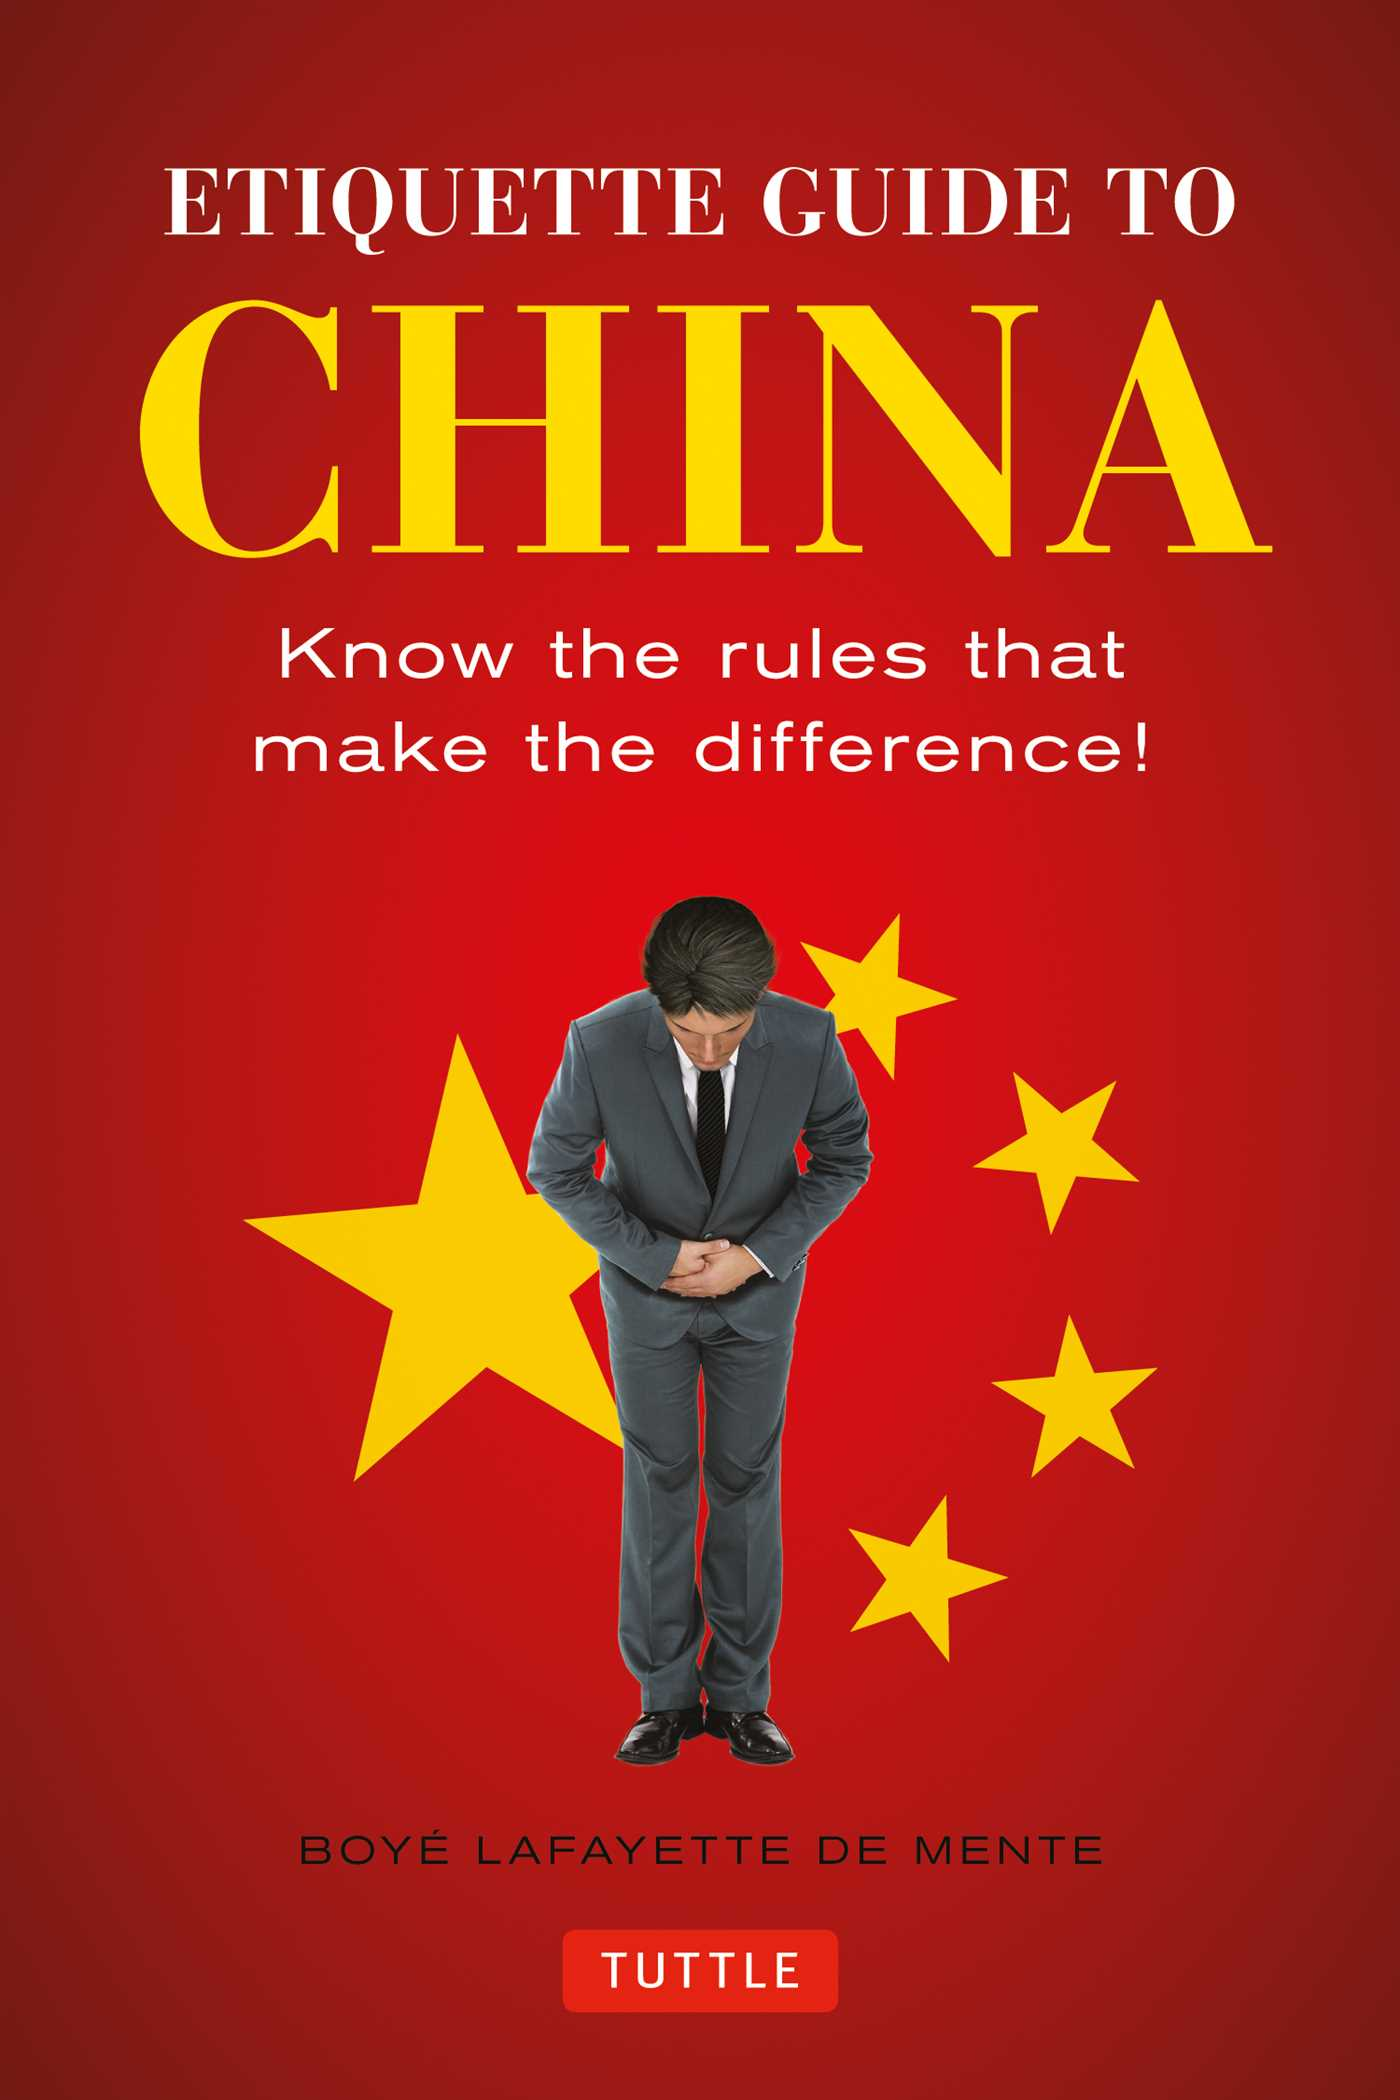 Guide - Etiquette Walmart China com To Ebook